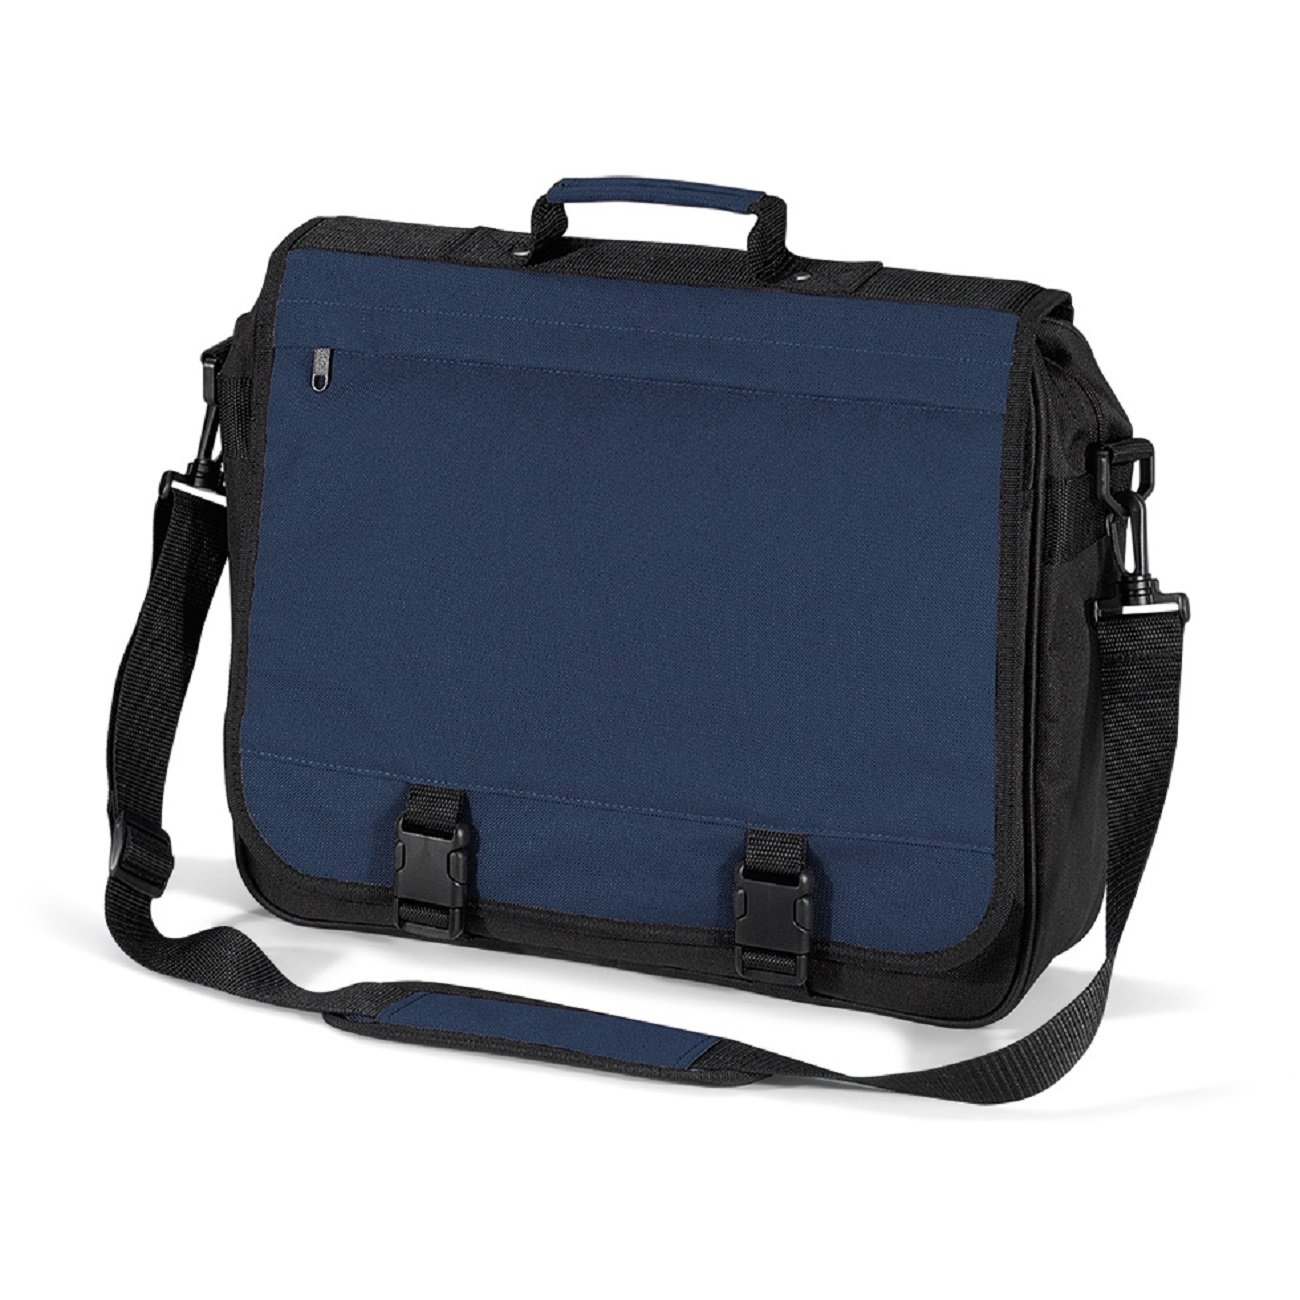 Bagbase Portfolio Briefcase in Black